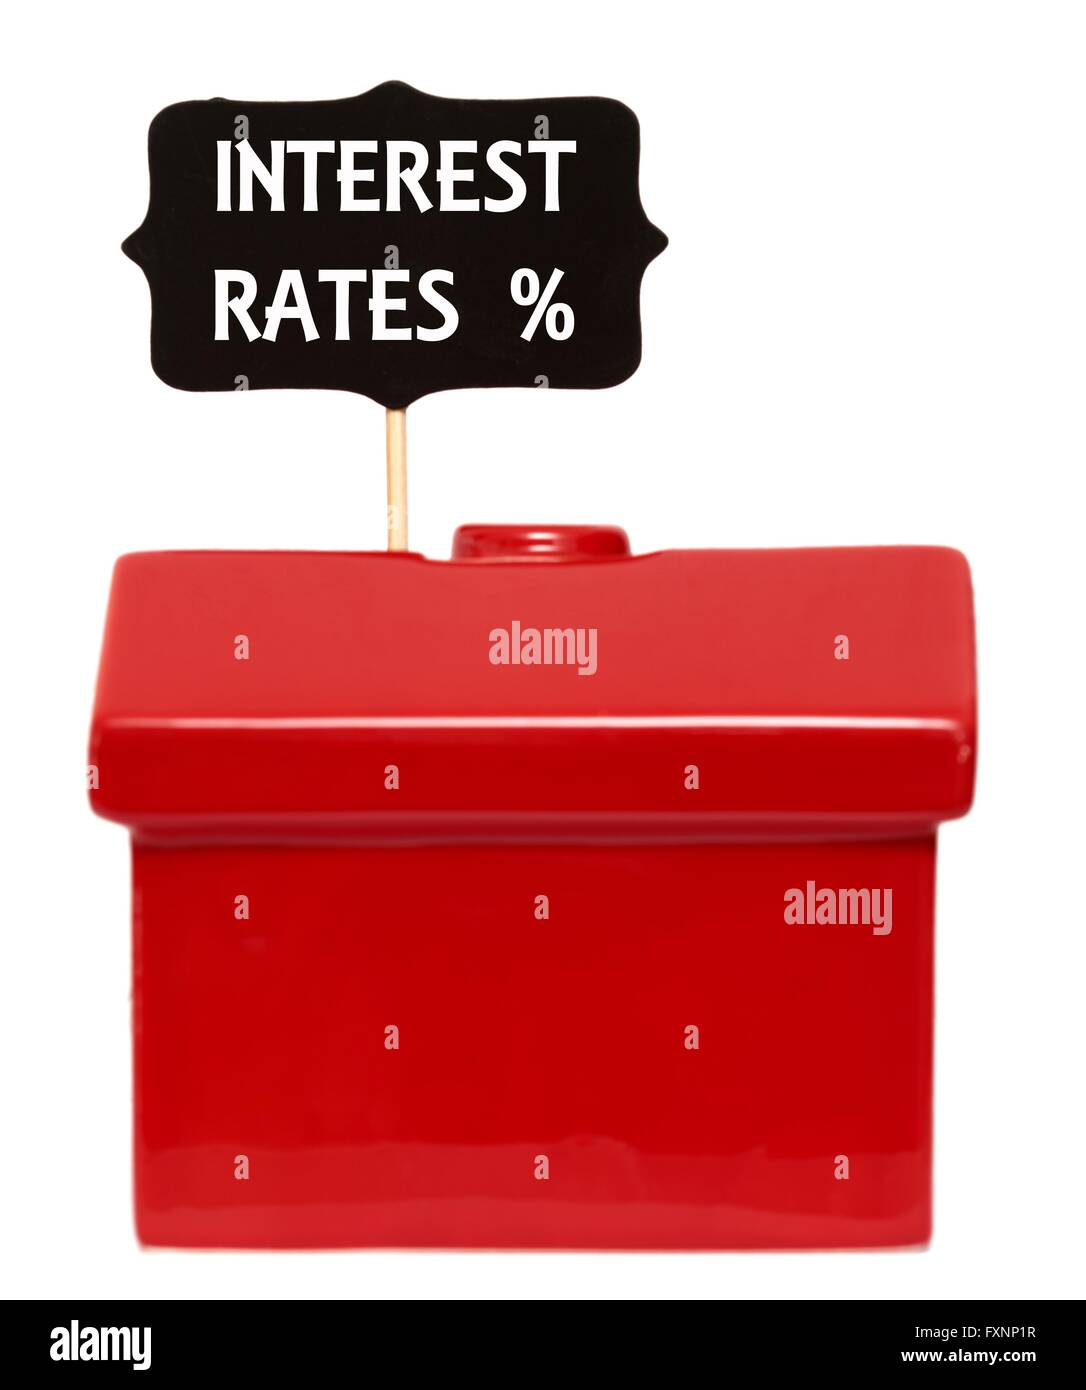 Red house with interest rates % sign - Stock Image